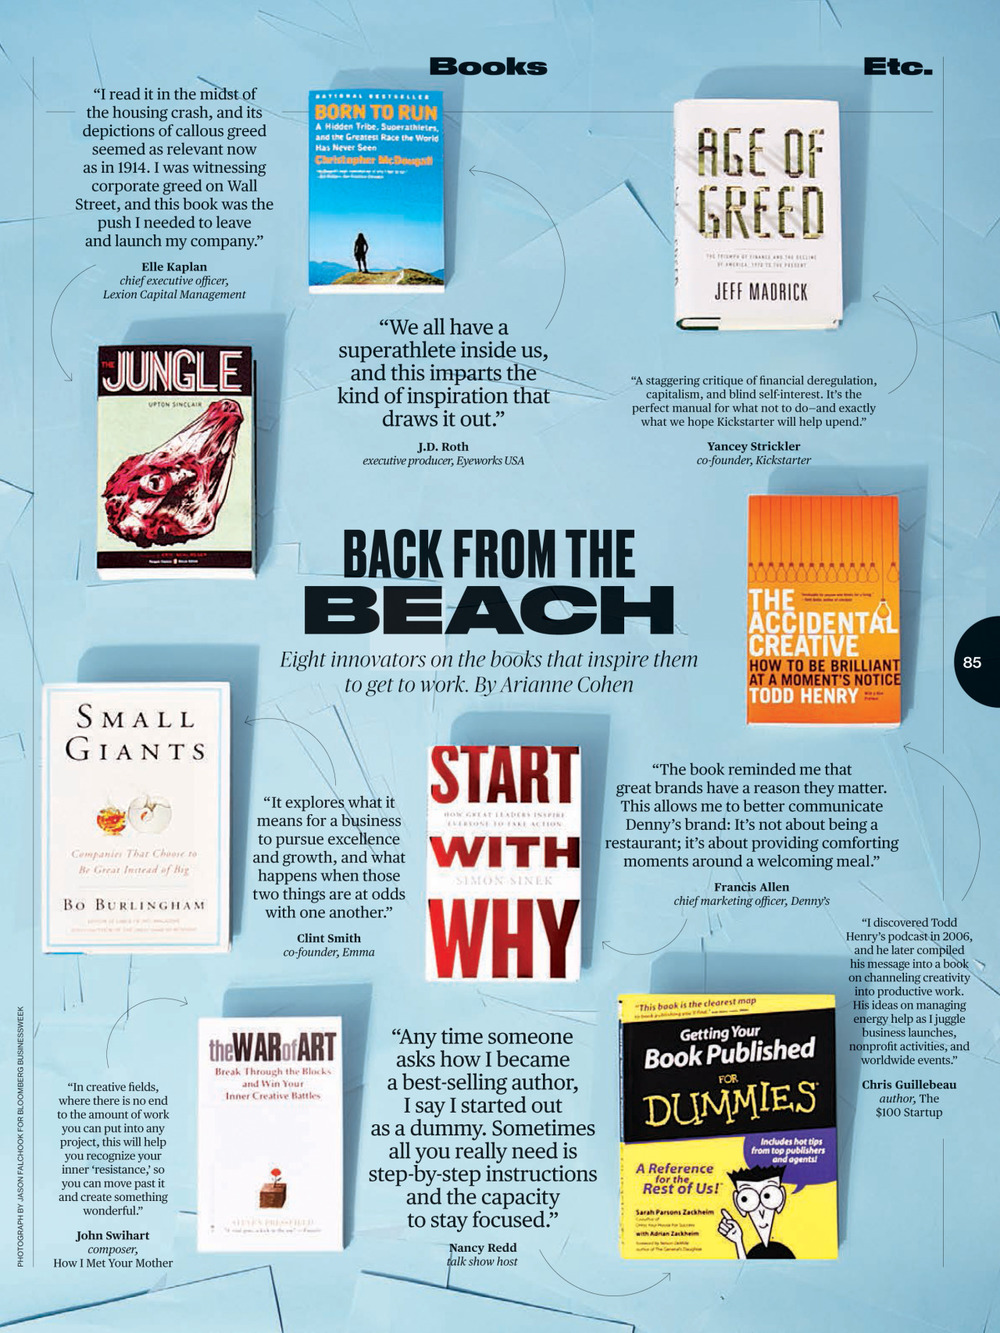 New work in Bloomberg Businessweek. Back from the Beach.